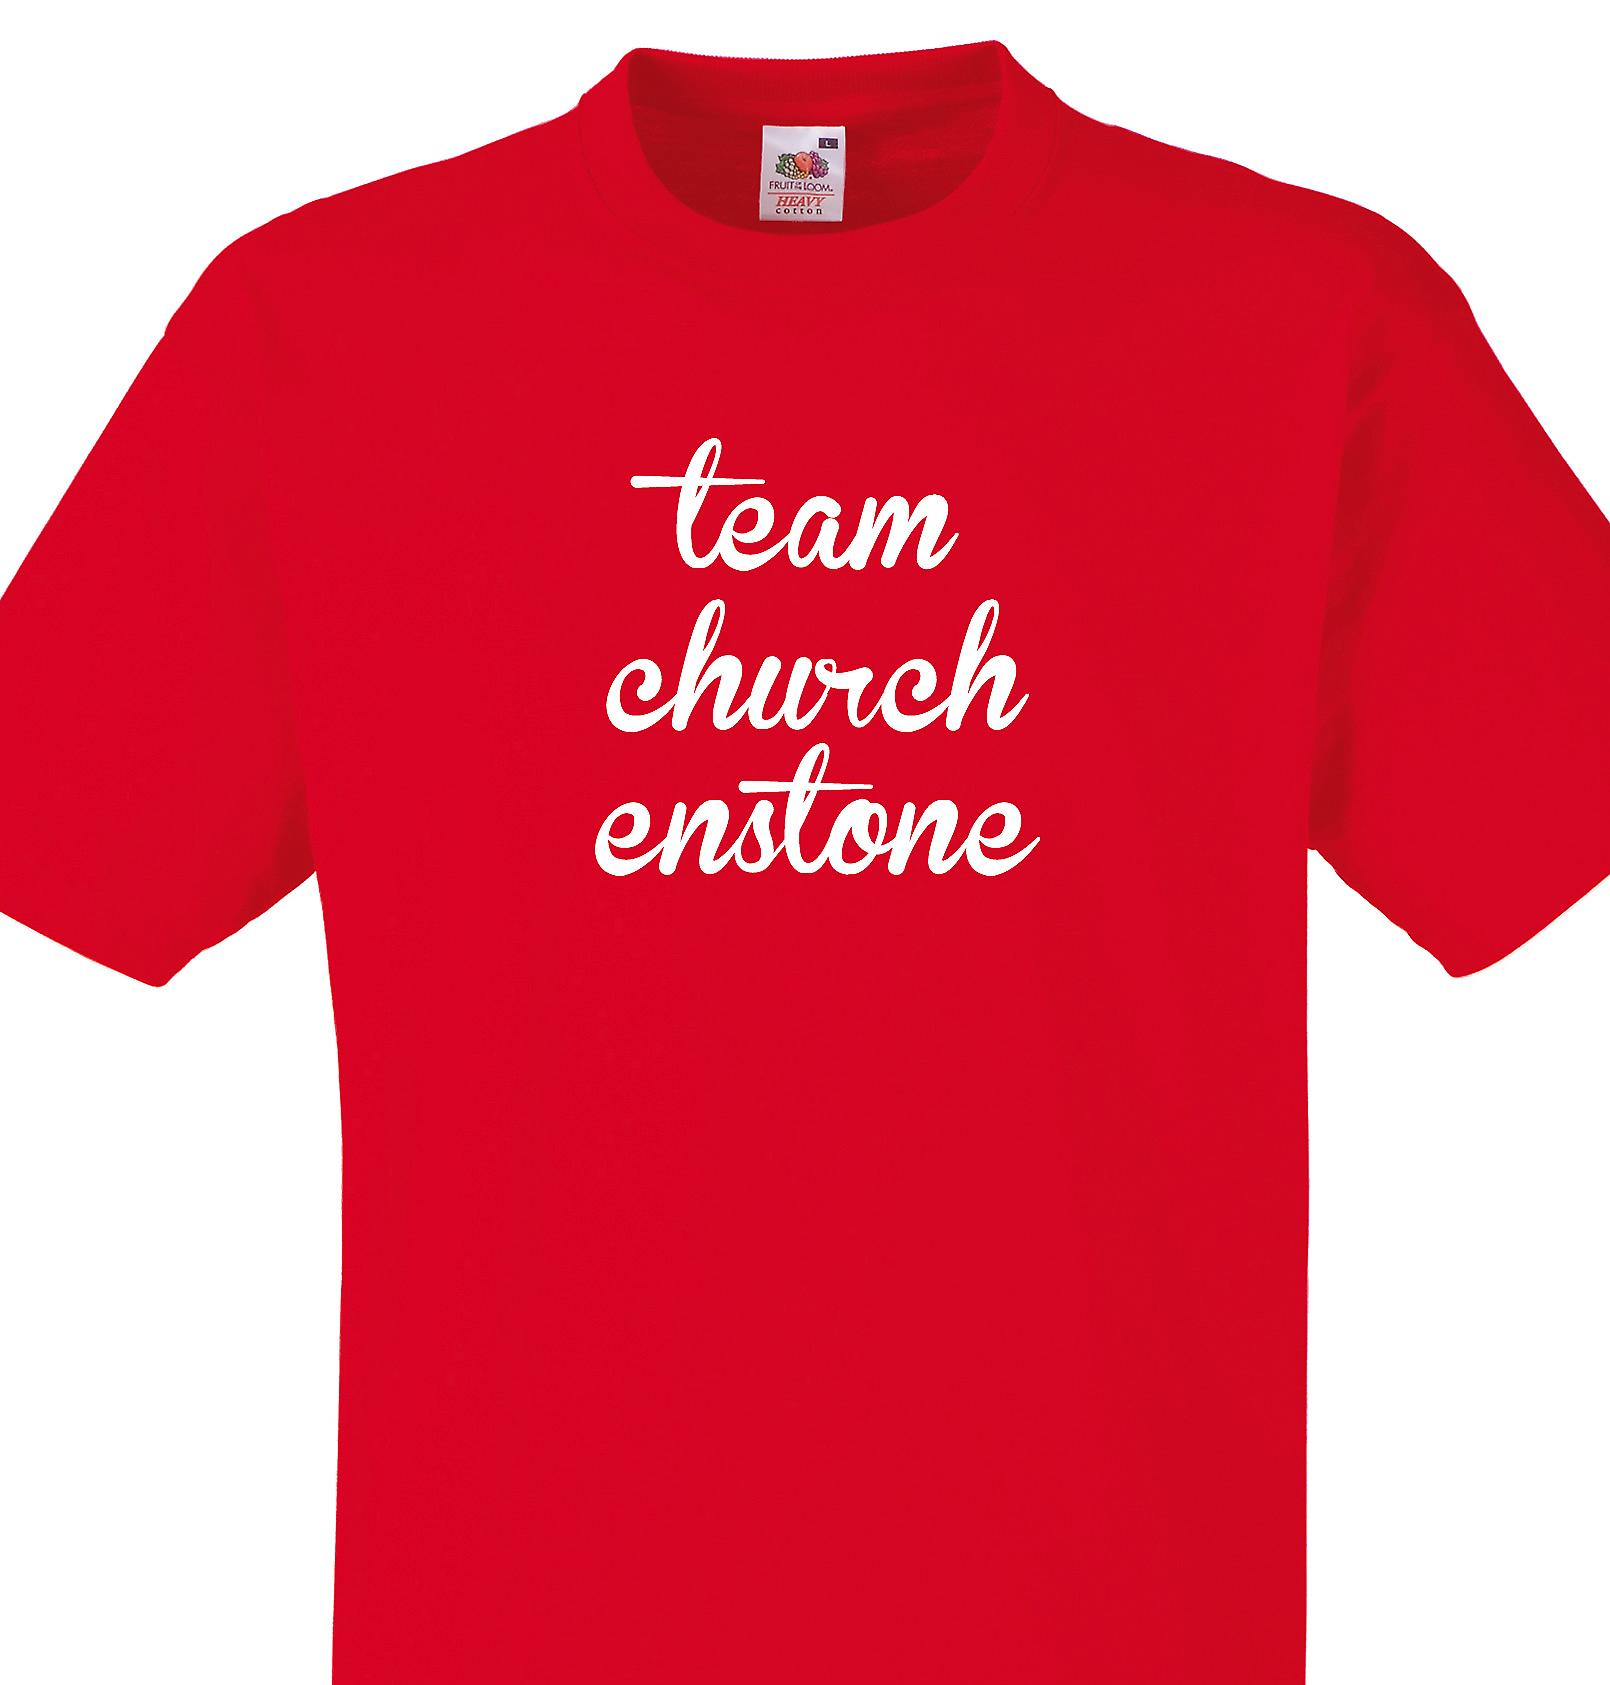 Team Church enstone Red T shirt